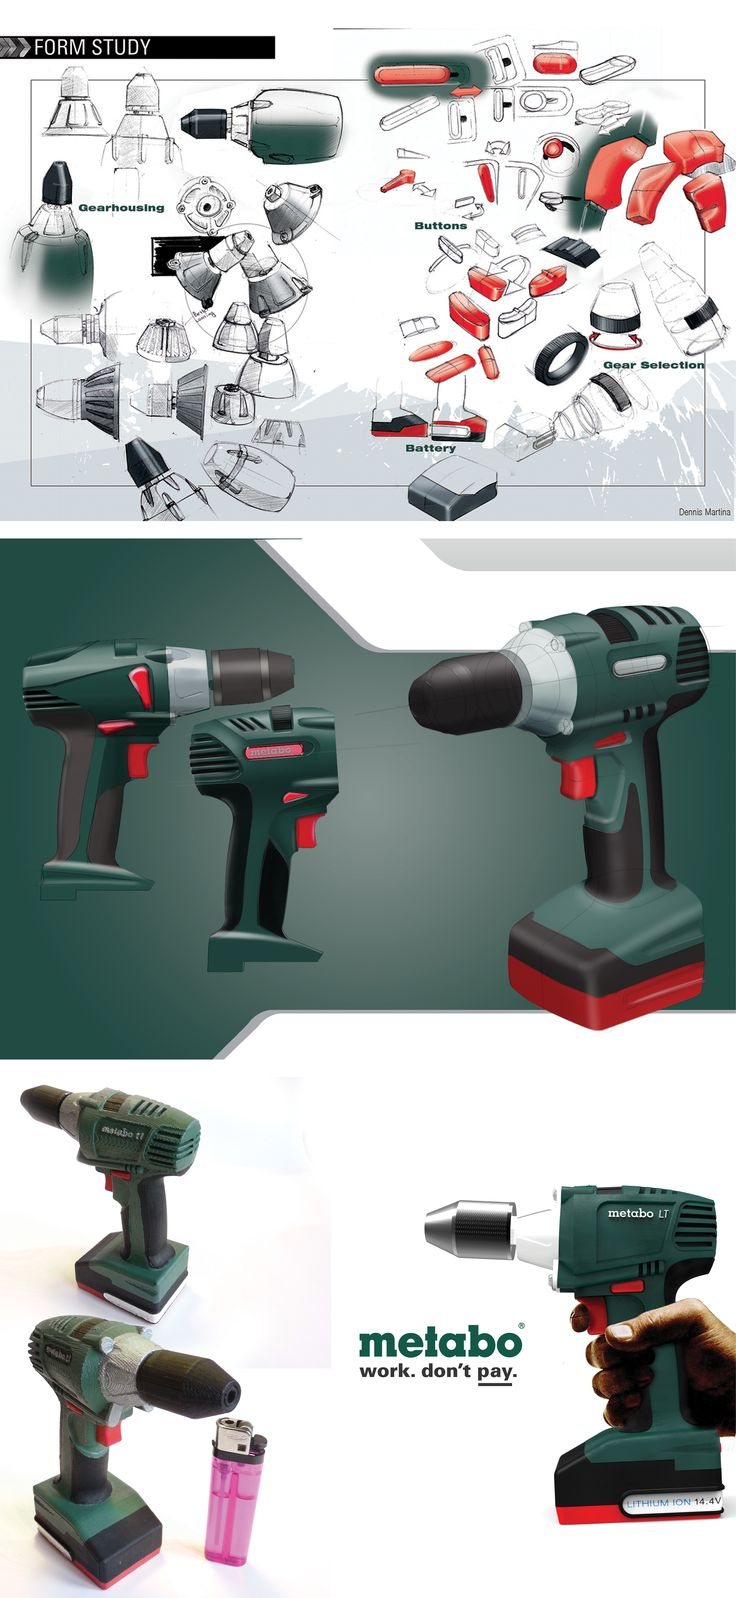 Redesign of a Metabo cordless drill. 2012